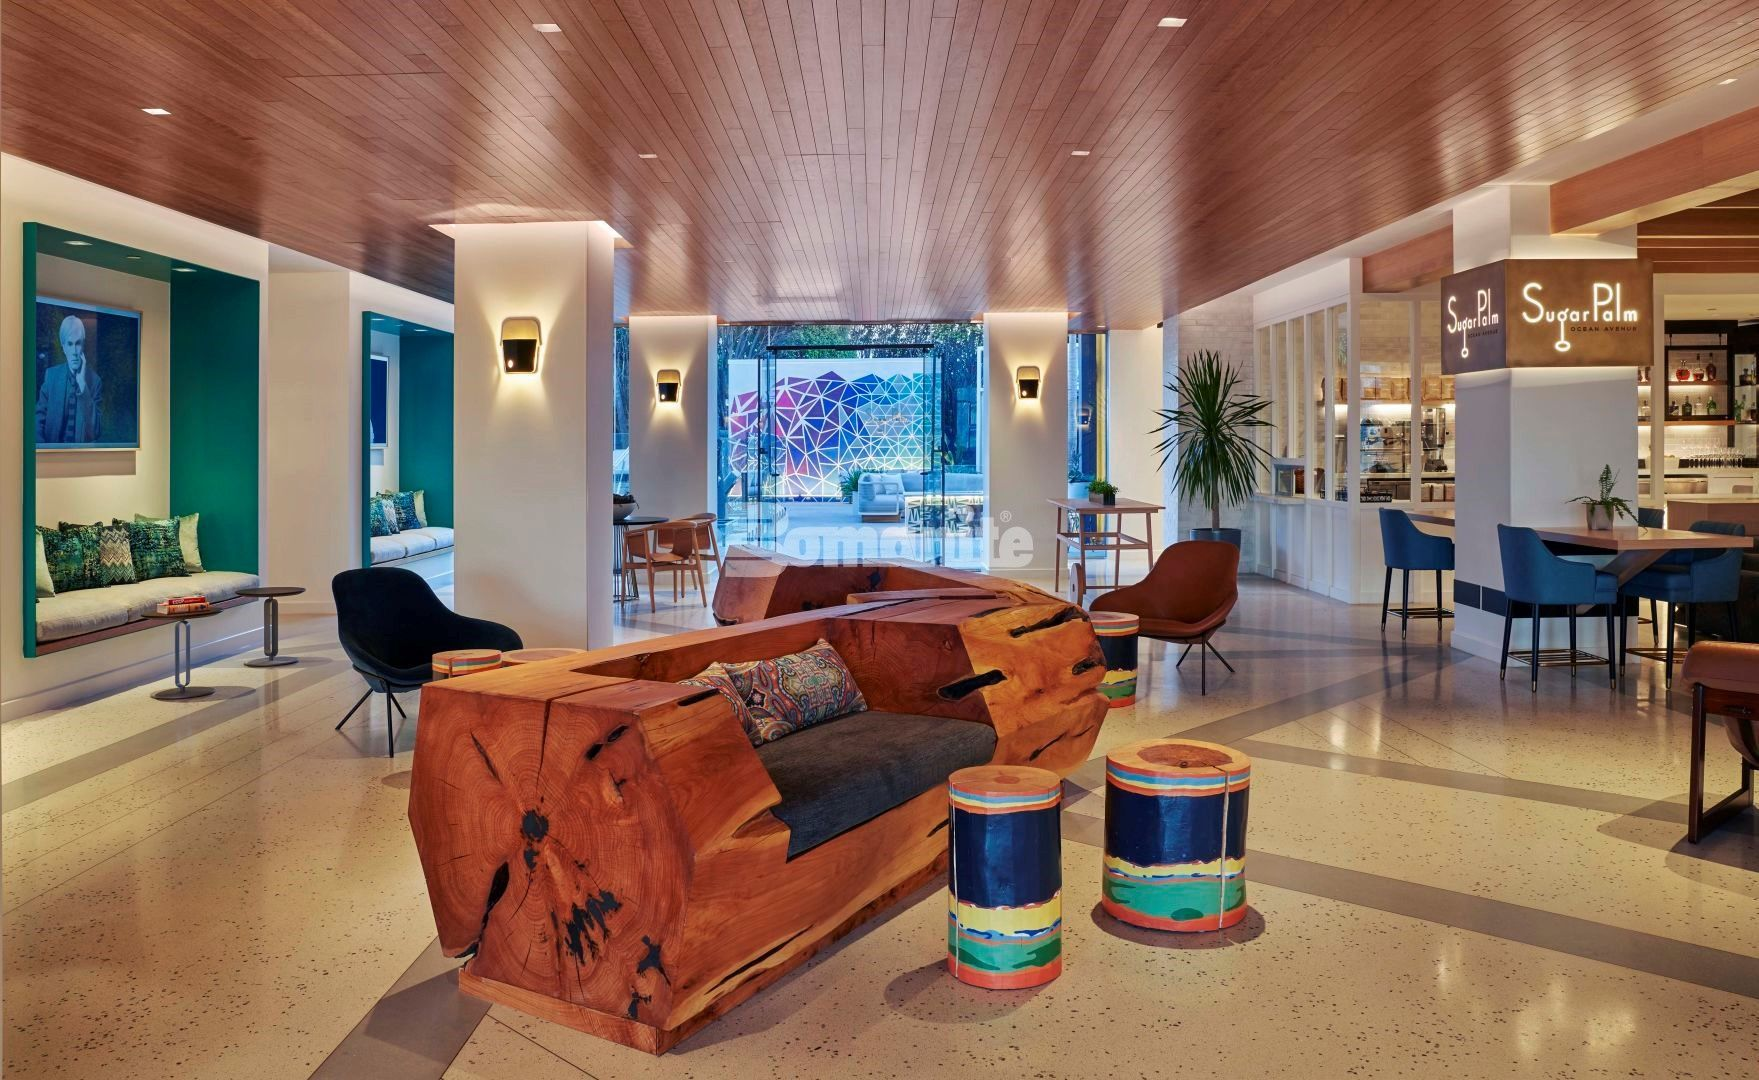 Lobby of the Viceroy Santa Monica located in Santa Monica, CA, completes their renovation featuring decorative concrete custom flooring with Bomanite Custom Polishing Systems using Bomanite Modena SL installed by Heritage Bomanite of Fresno, CA.